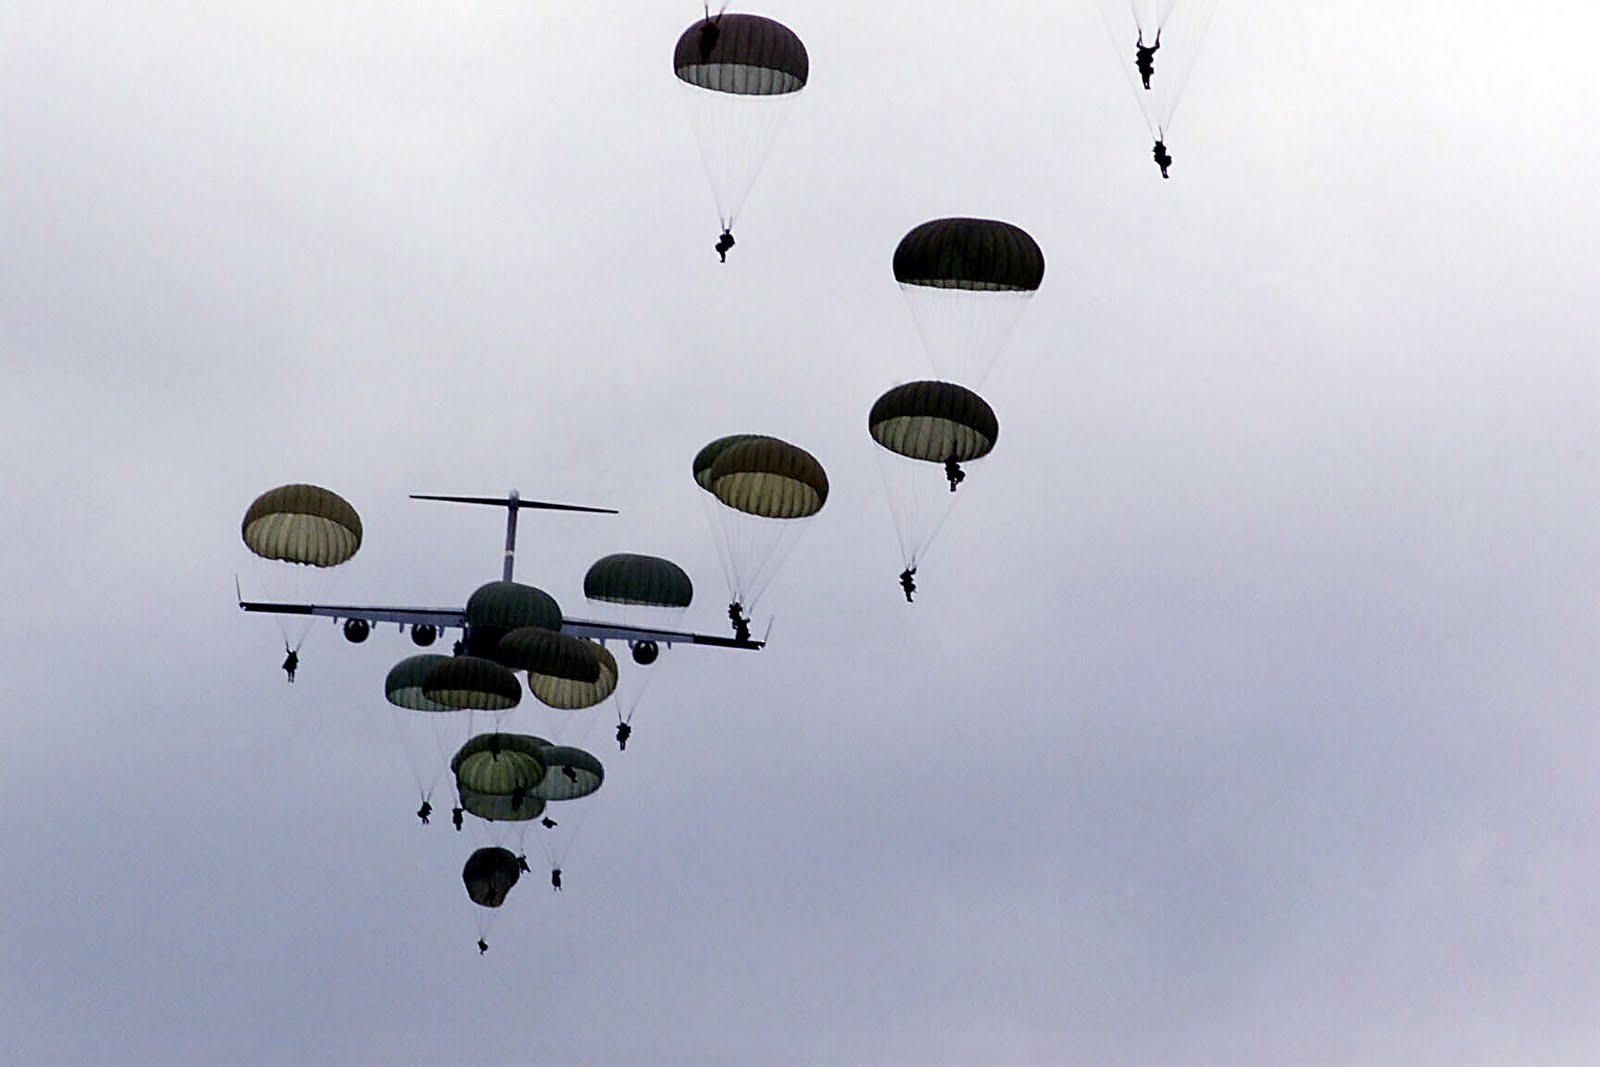 Us army airborne The Images 1600x1067